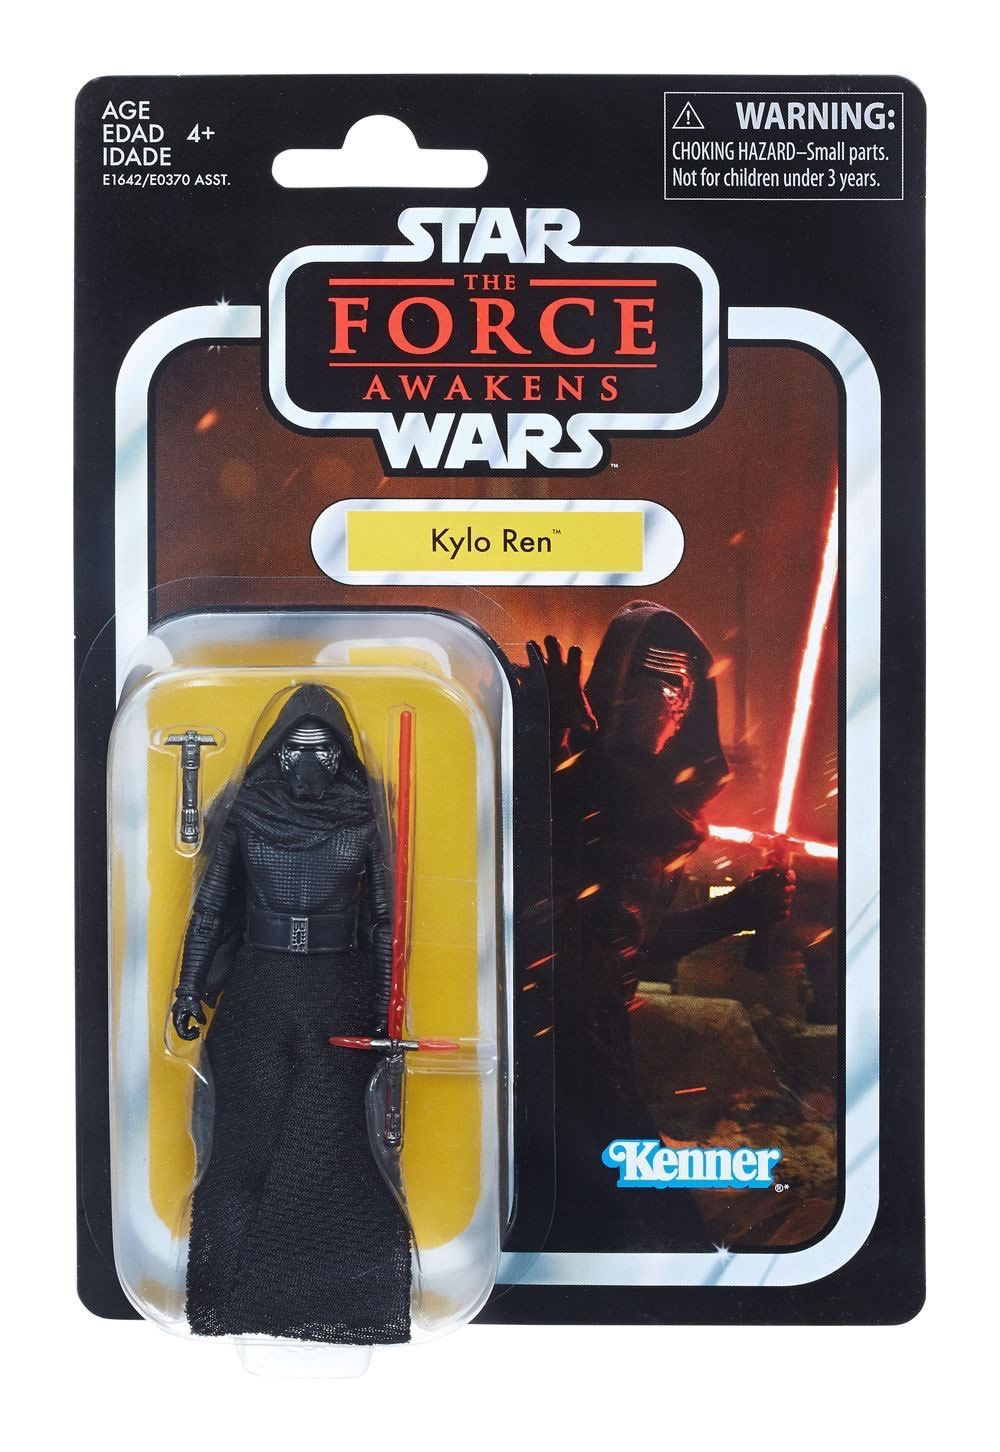 Carnt Wait To Buy Action Figures My Other Love Pinterest Star